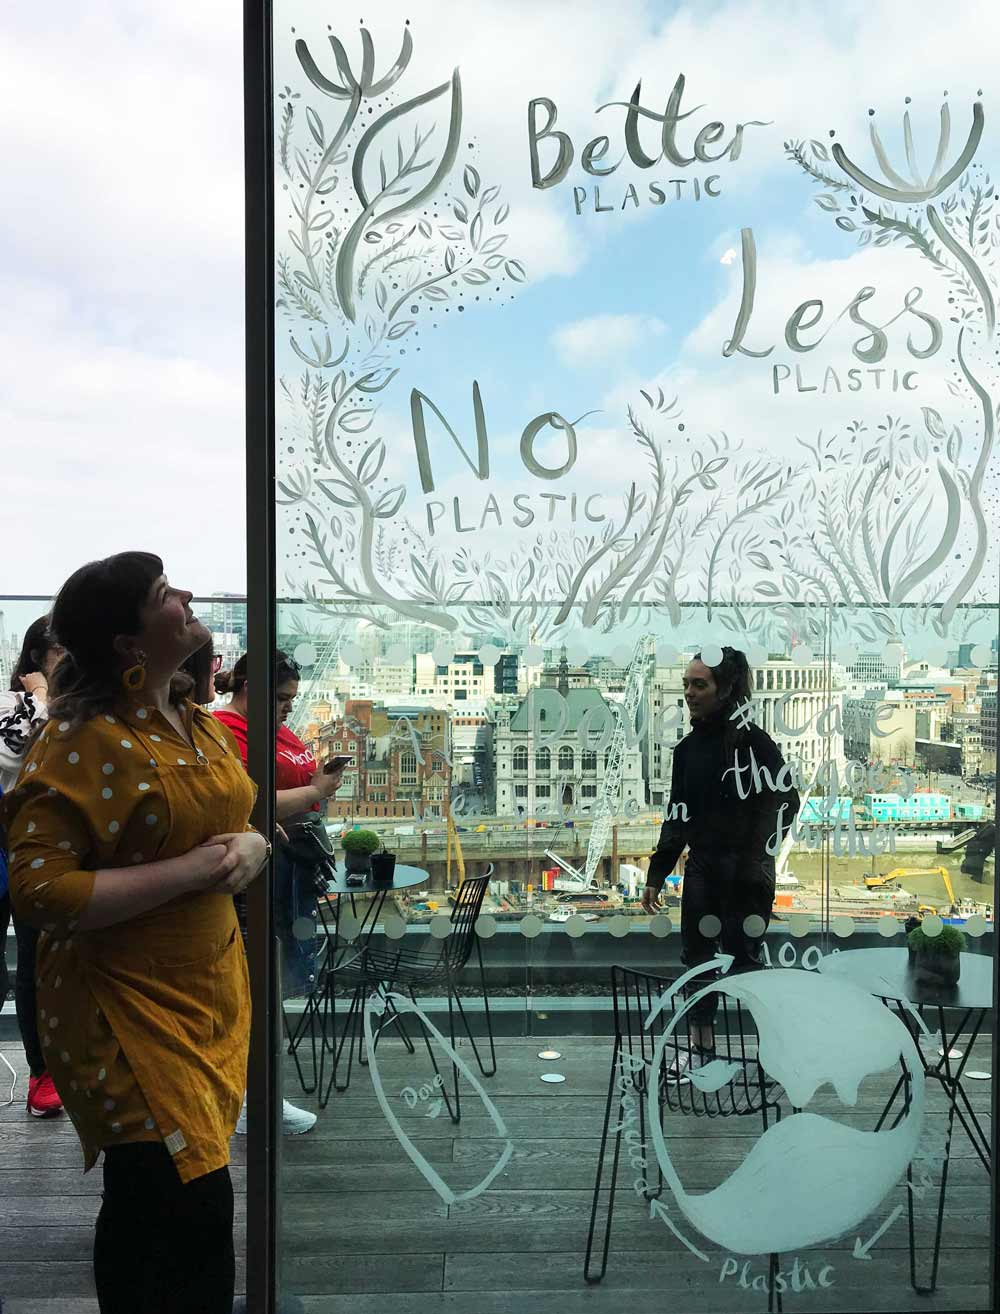 Window painting / live mural on glass for Dove's sustainability event in London, UK.